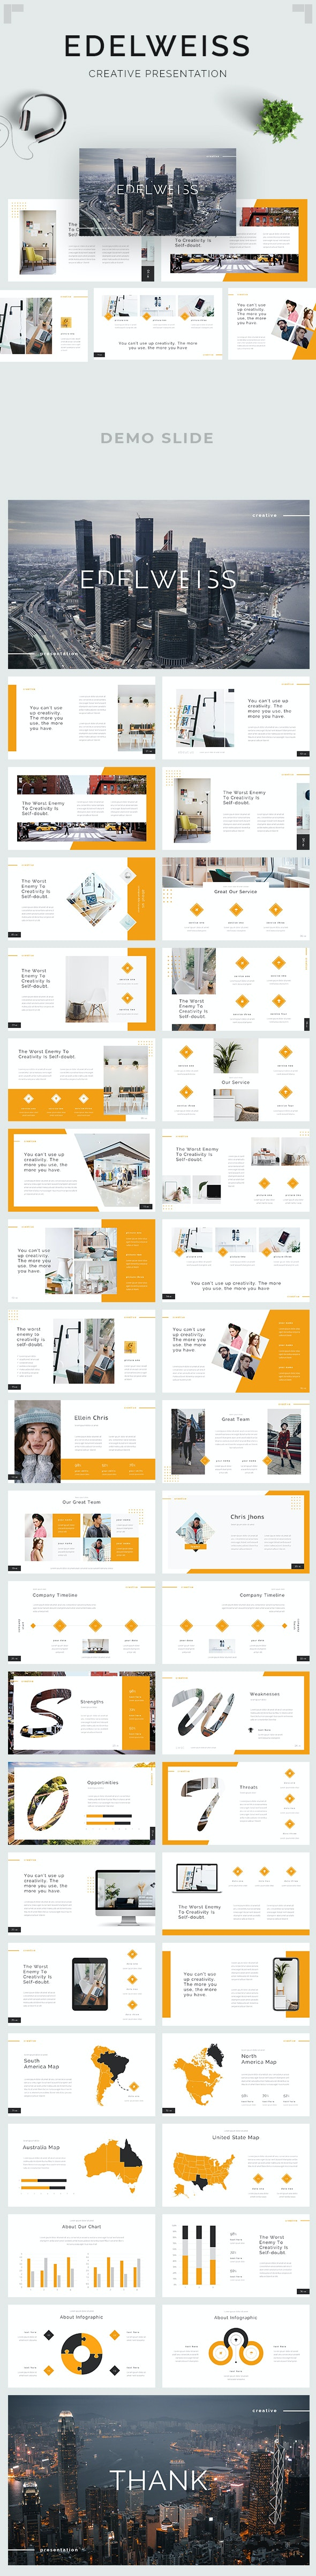 Edelweiss - Creative PowerPoint Template - Creative PowerPoint Templates